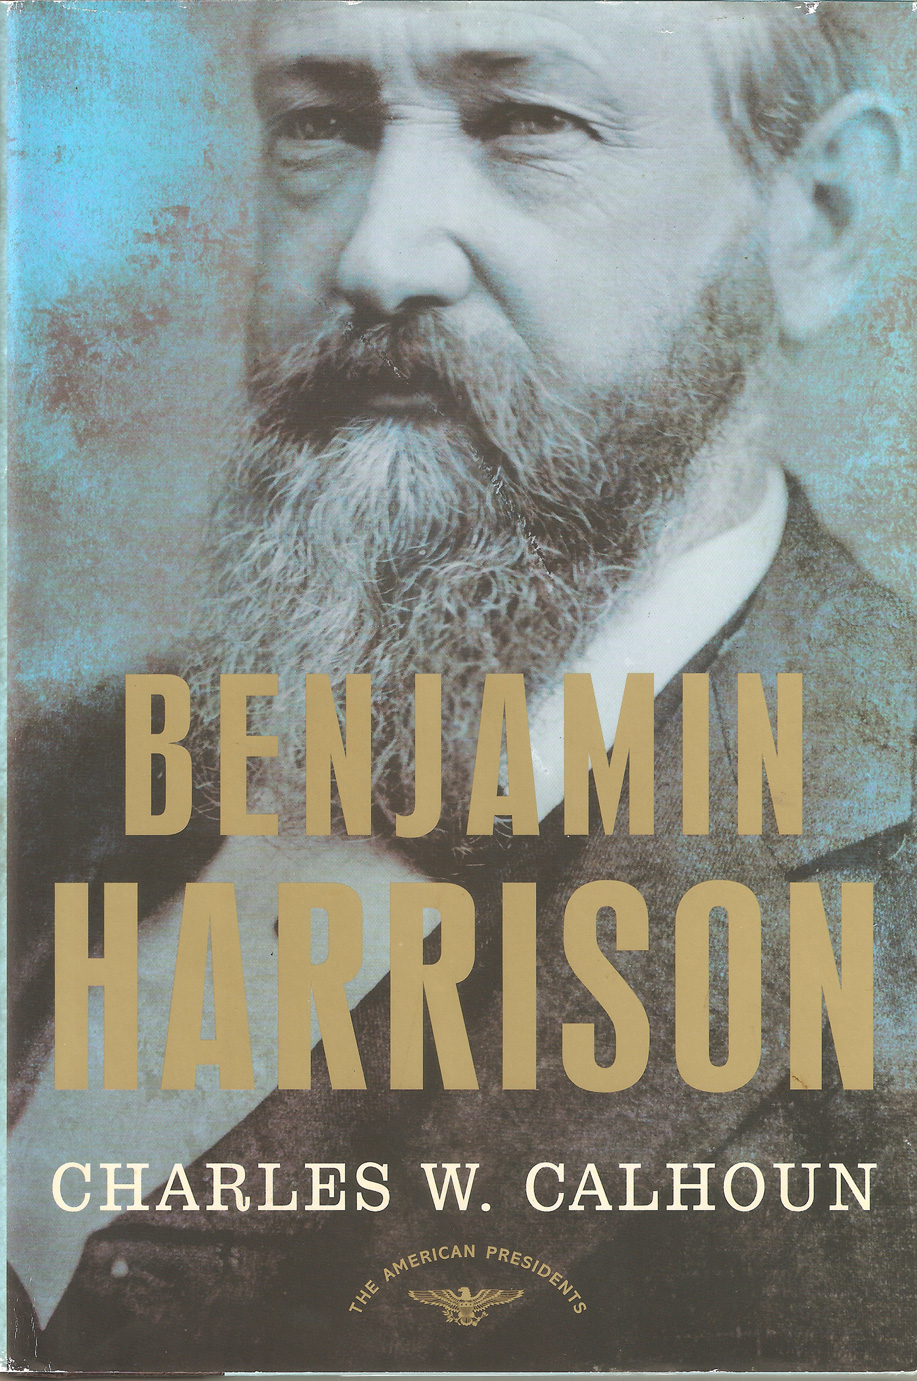 biography of Benjamin Harrison